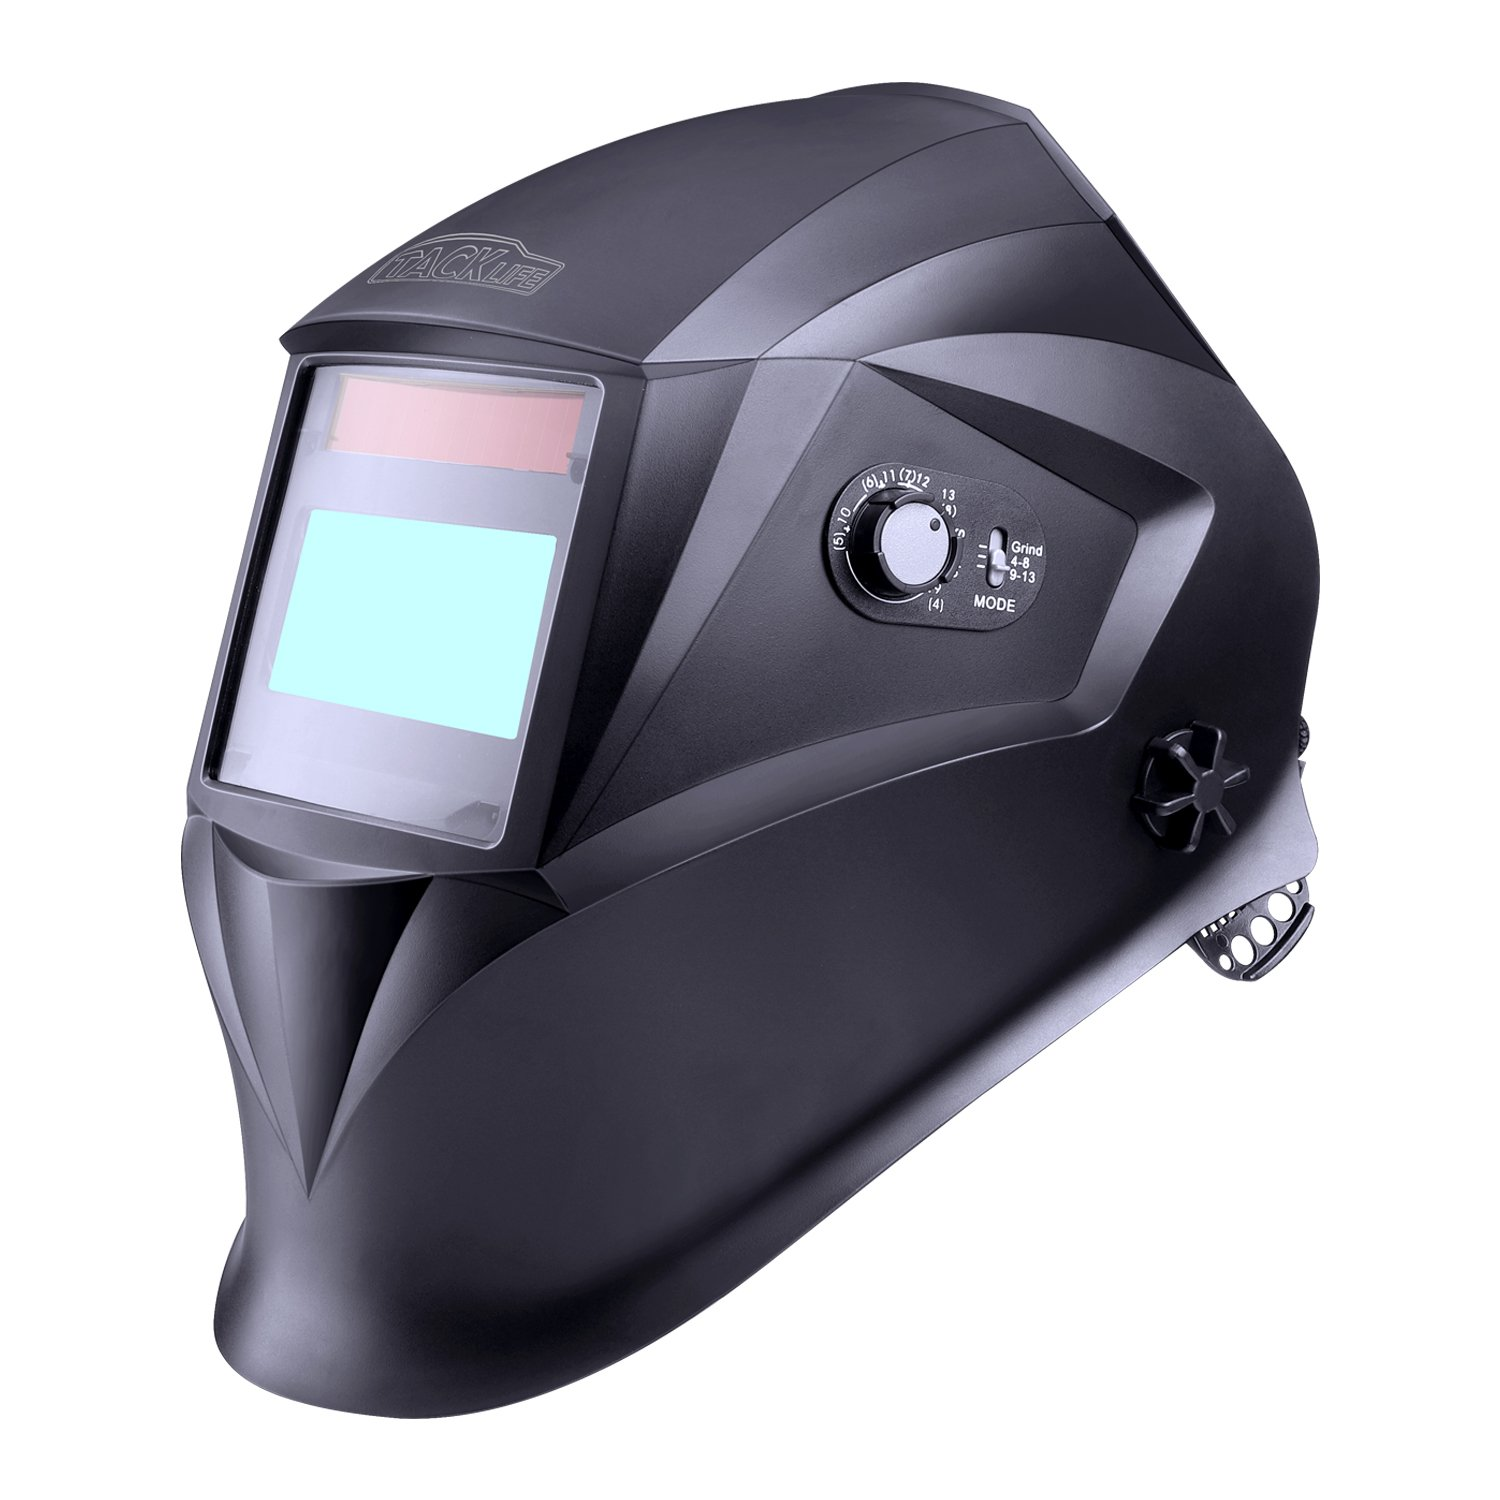 Tacklife Solar Powered Auto Darkening Welding Helmet with Top Optical Class 1/1/1/1, Full Shade Range 3/4-8/9-13, UV/IR Protection DIN 16, High-impact Resistant Polyamide Nylon Material - PAH04D